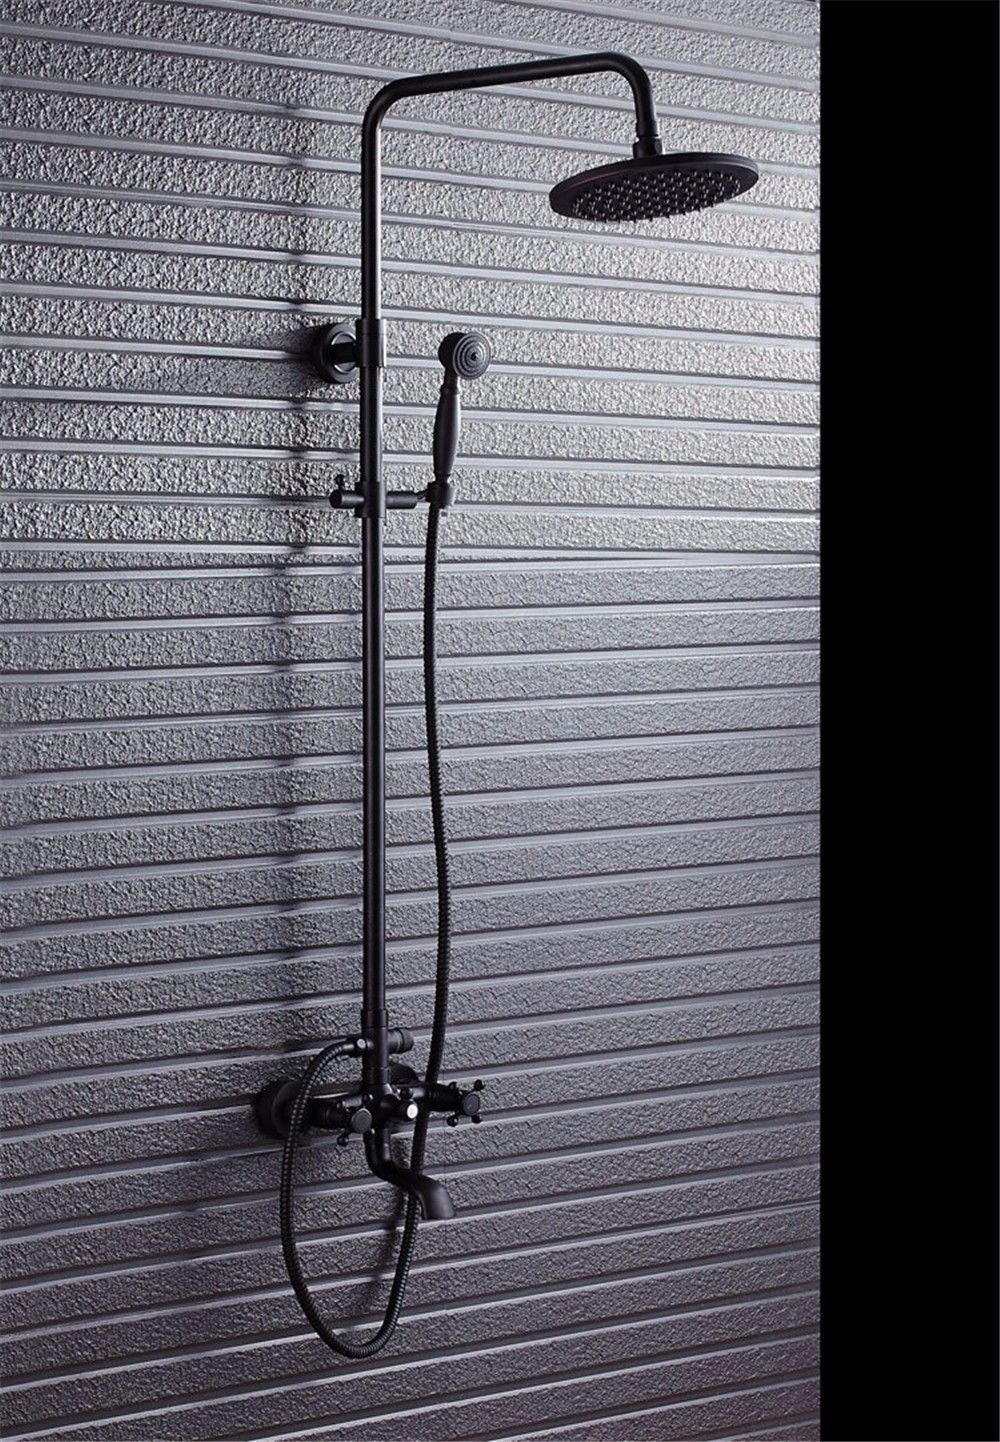 Black NewBorn Faucet Kitchen Or Bathroom Sink Mixer Tap Antique Bathtubs And Showers Showers Set To Lift The Black Retro Shower Shower Water Tap Handheld Shower bluee Decorated Porcelain Black